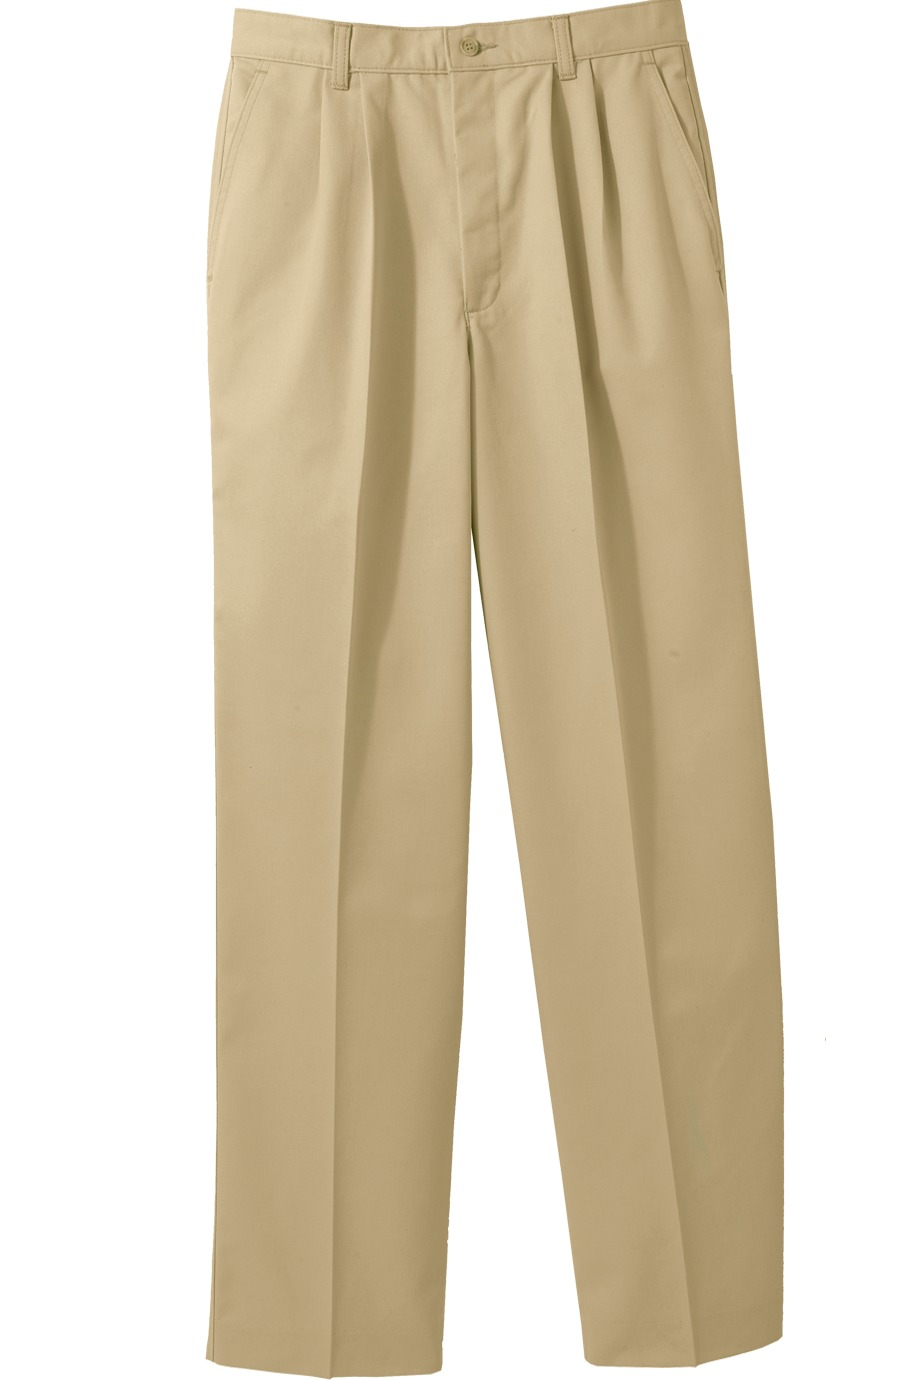 Edwards Garment 2670 - Men's Blended Chino Flat Front Pant